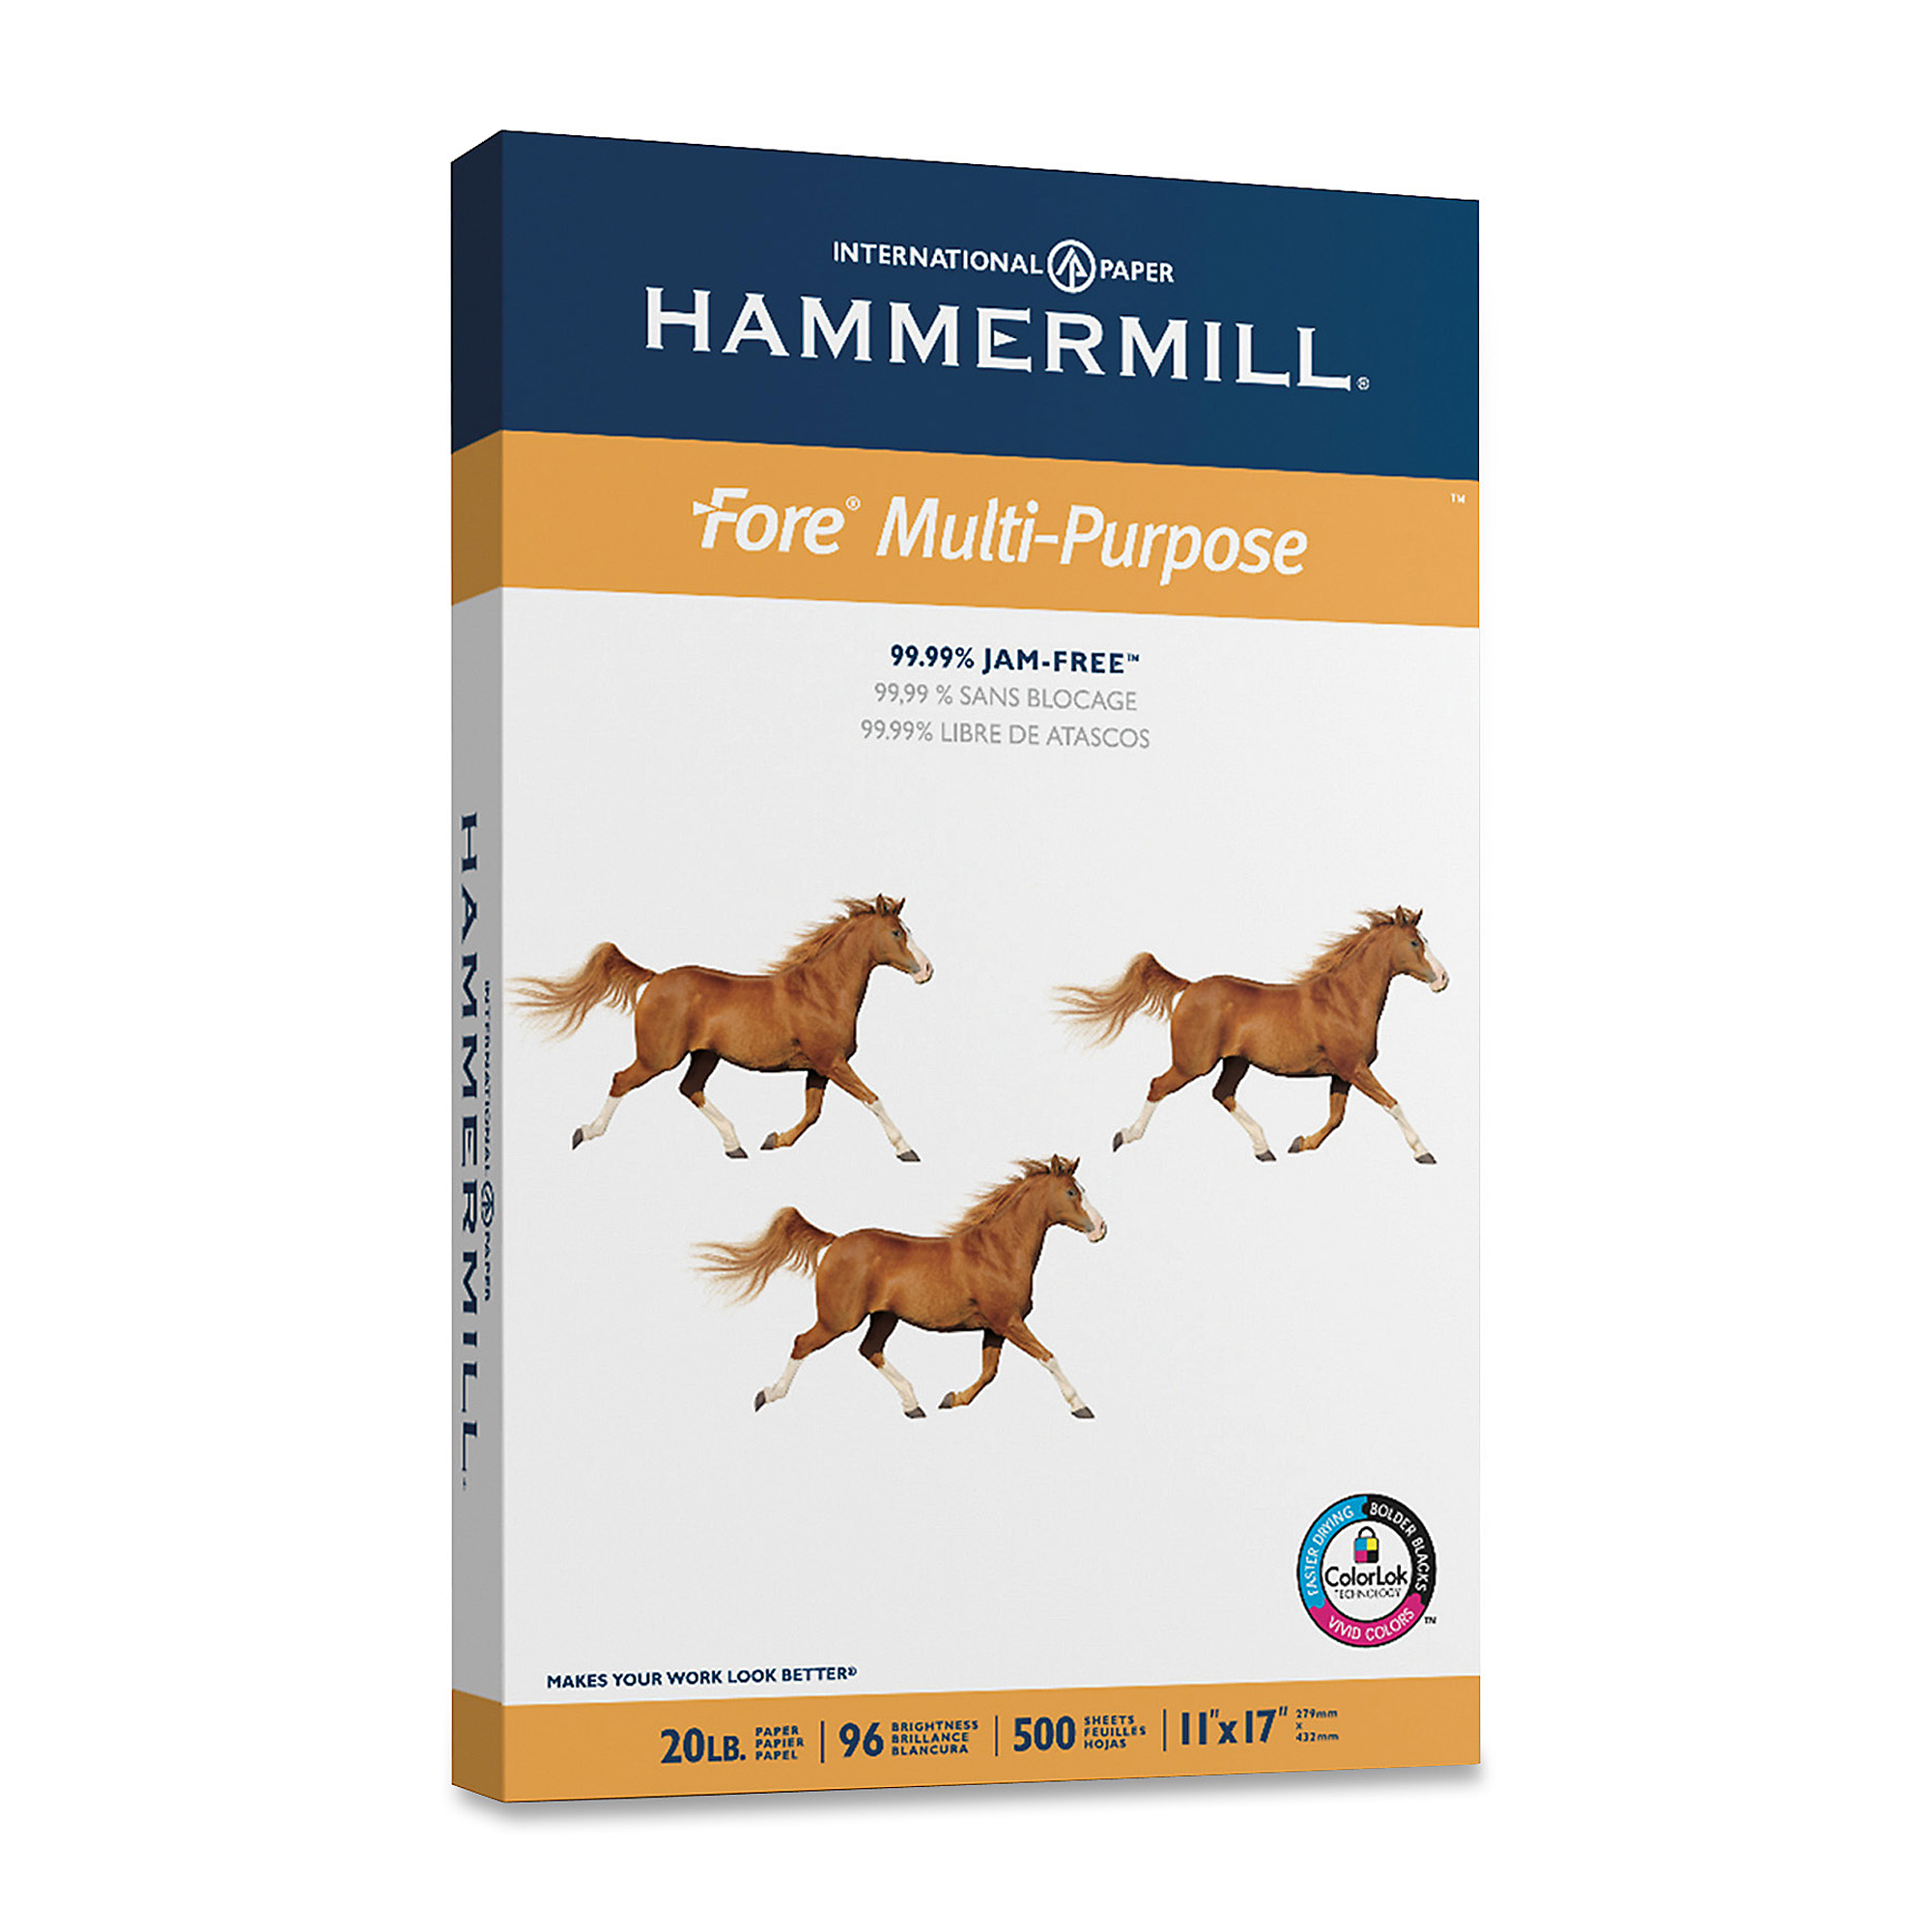 "Hammermill® Fore Multi-Use Paper, Ledger Size (11"" x 17""), 20 Lb, Ream Of 500 Sheets"